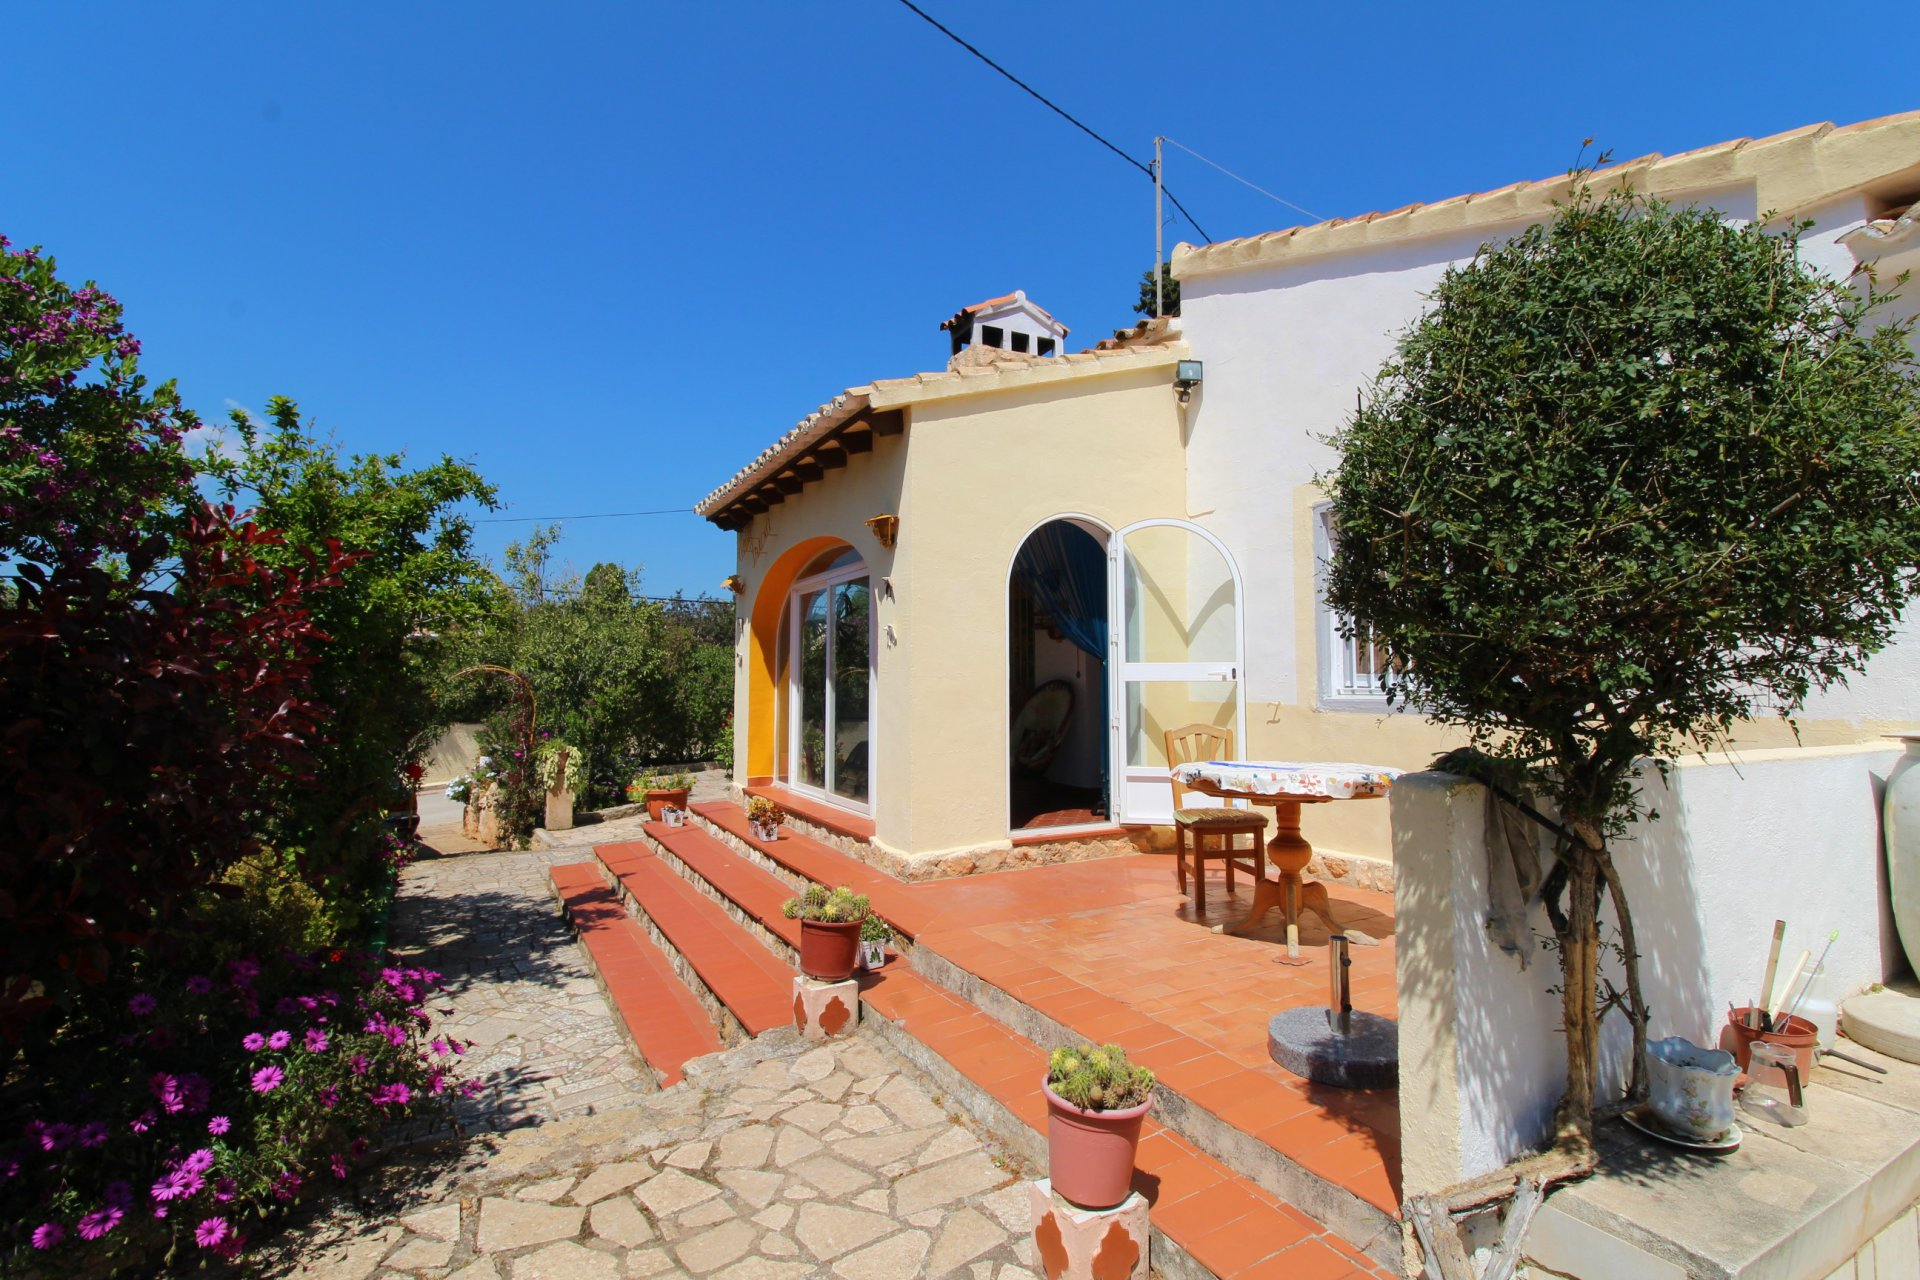 Private groundfloor villa within walking distance to beach and town